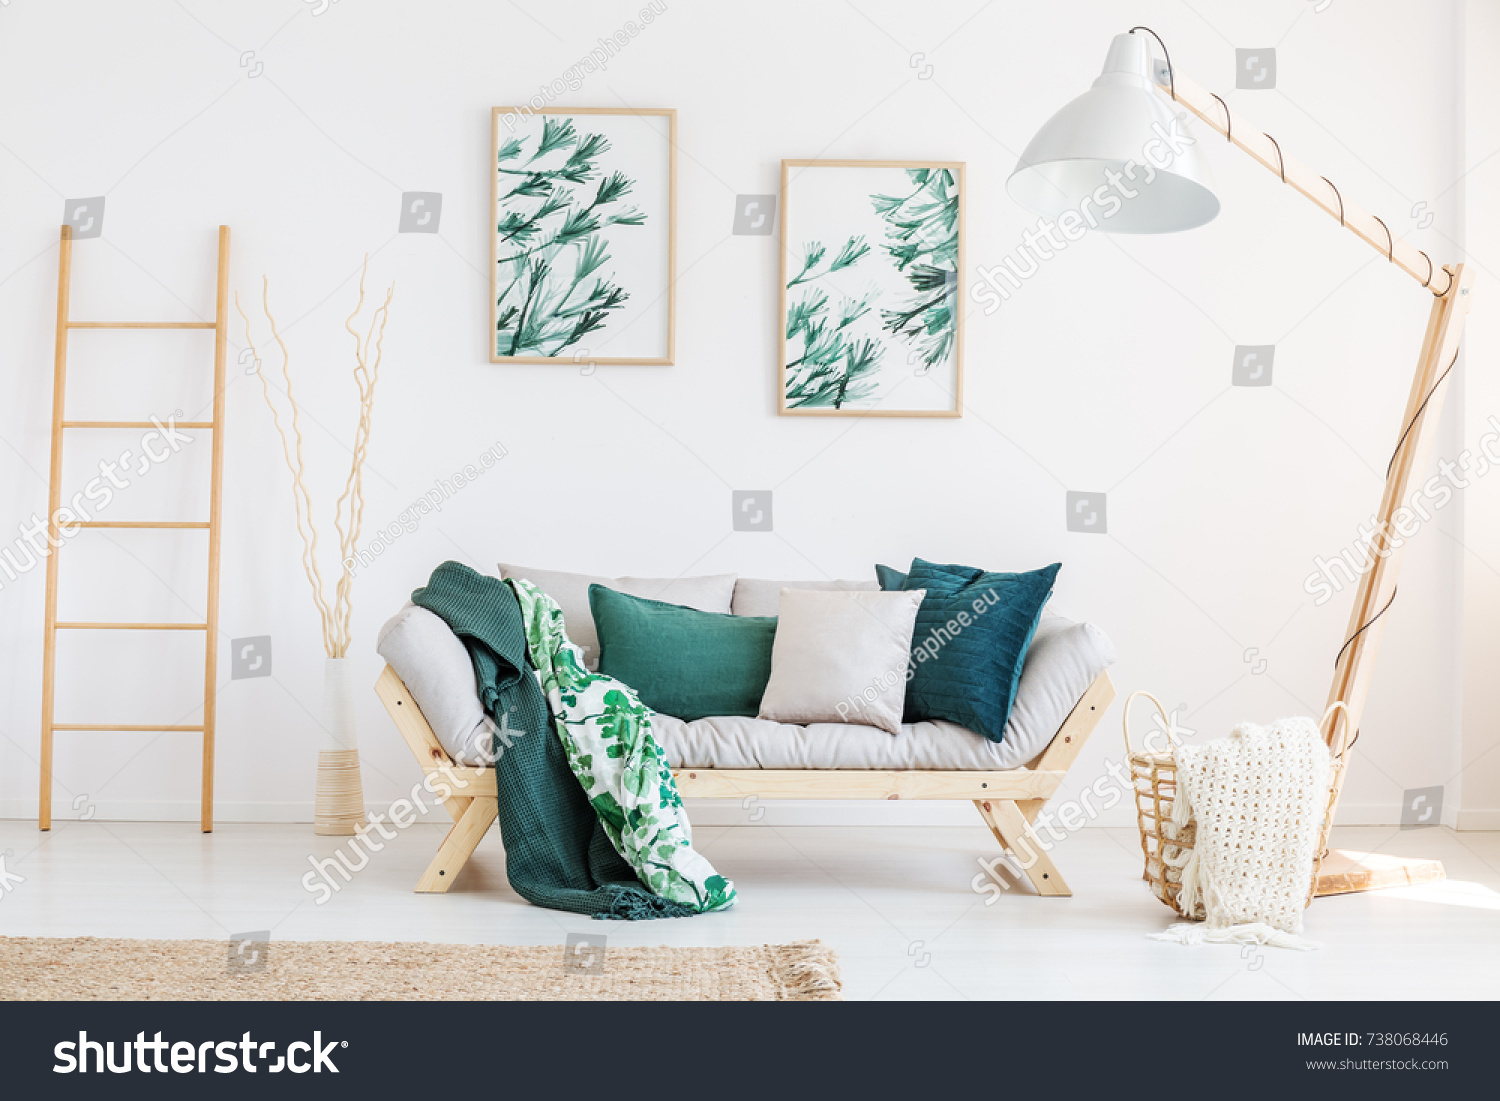 Leaves Painting Above Sofa Green Pillows Stock Photo 738068446  ~ Designer Pillows For Sofa